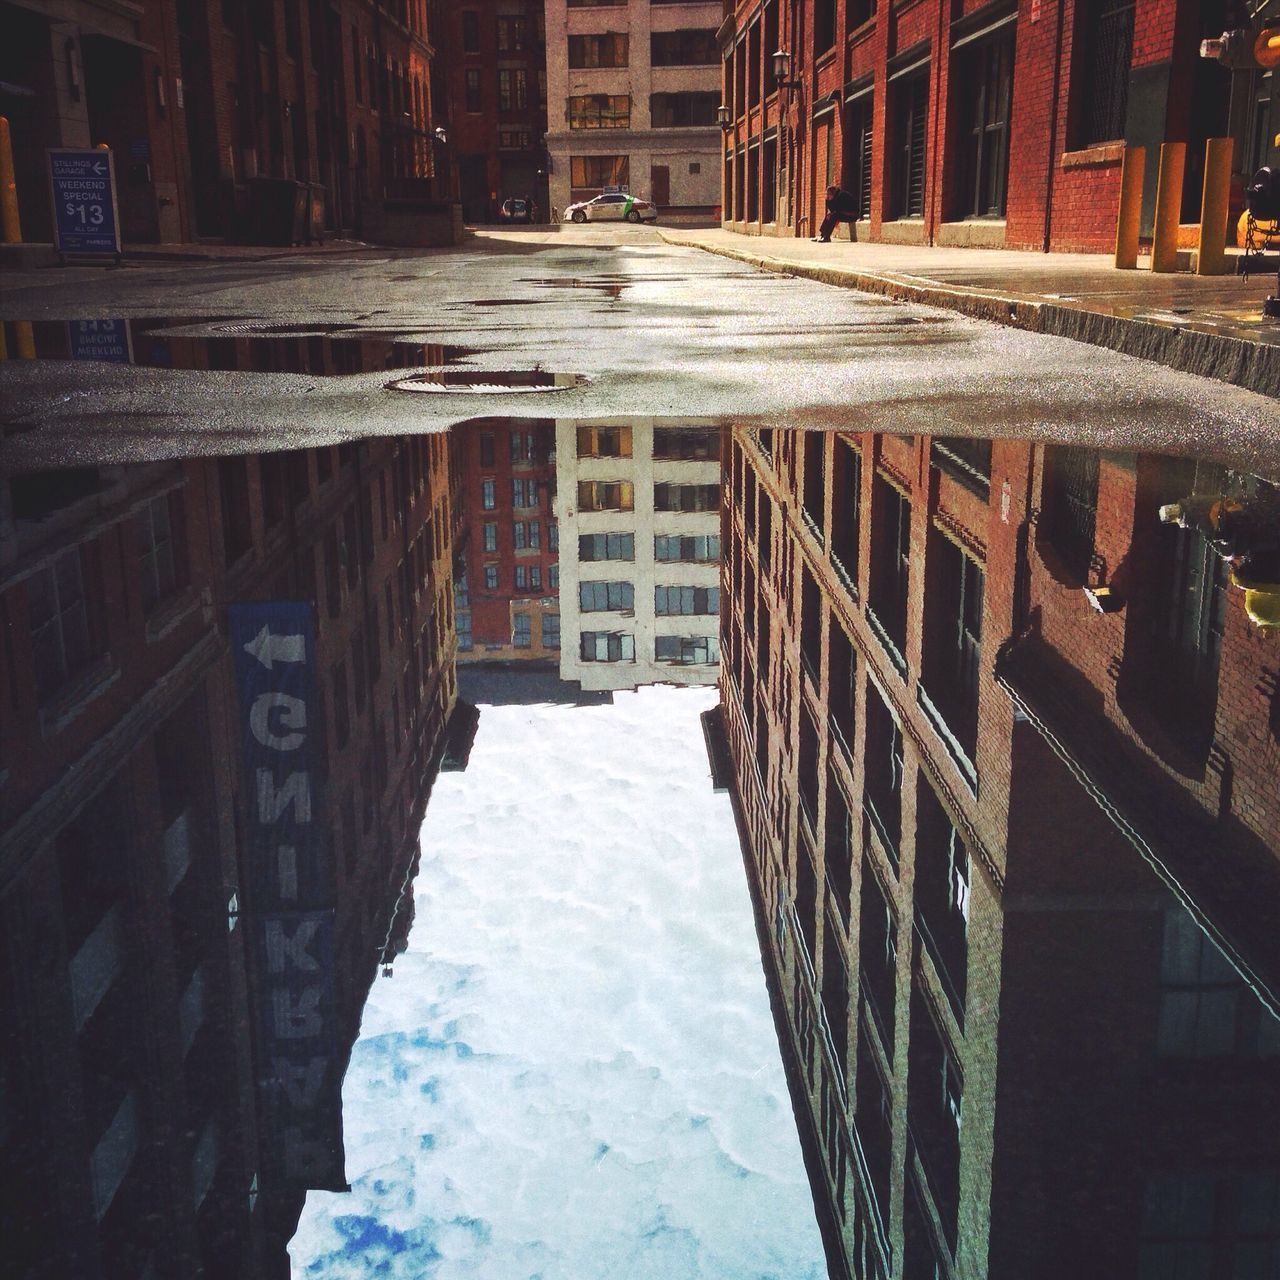 View of puddle in street